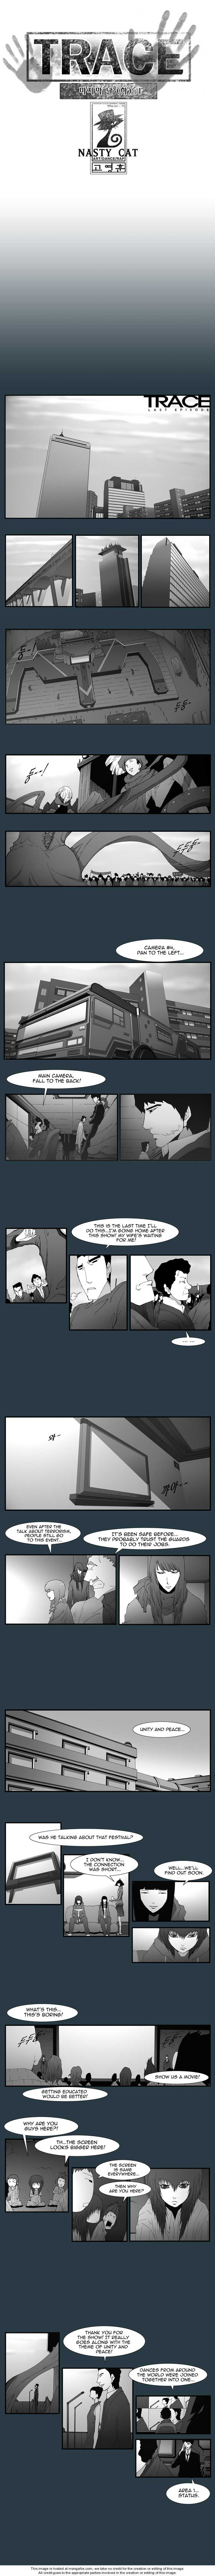 Trace 1 Page 1